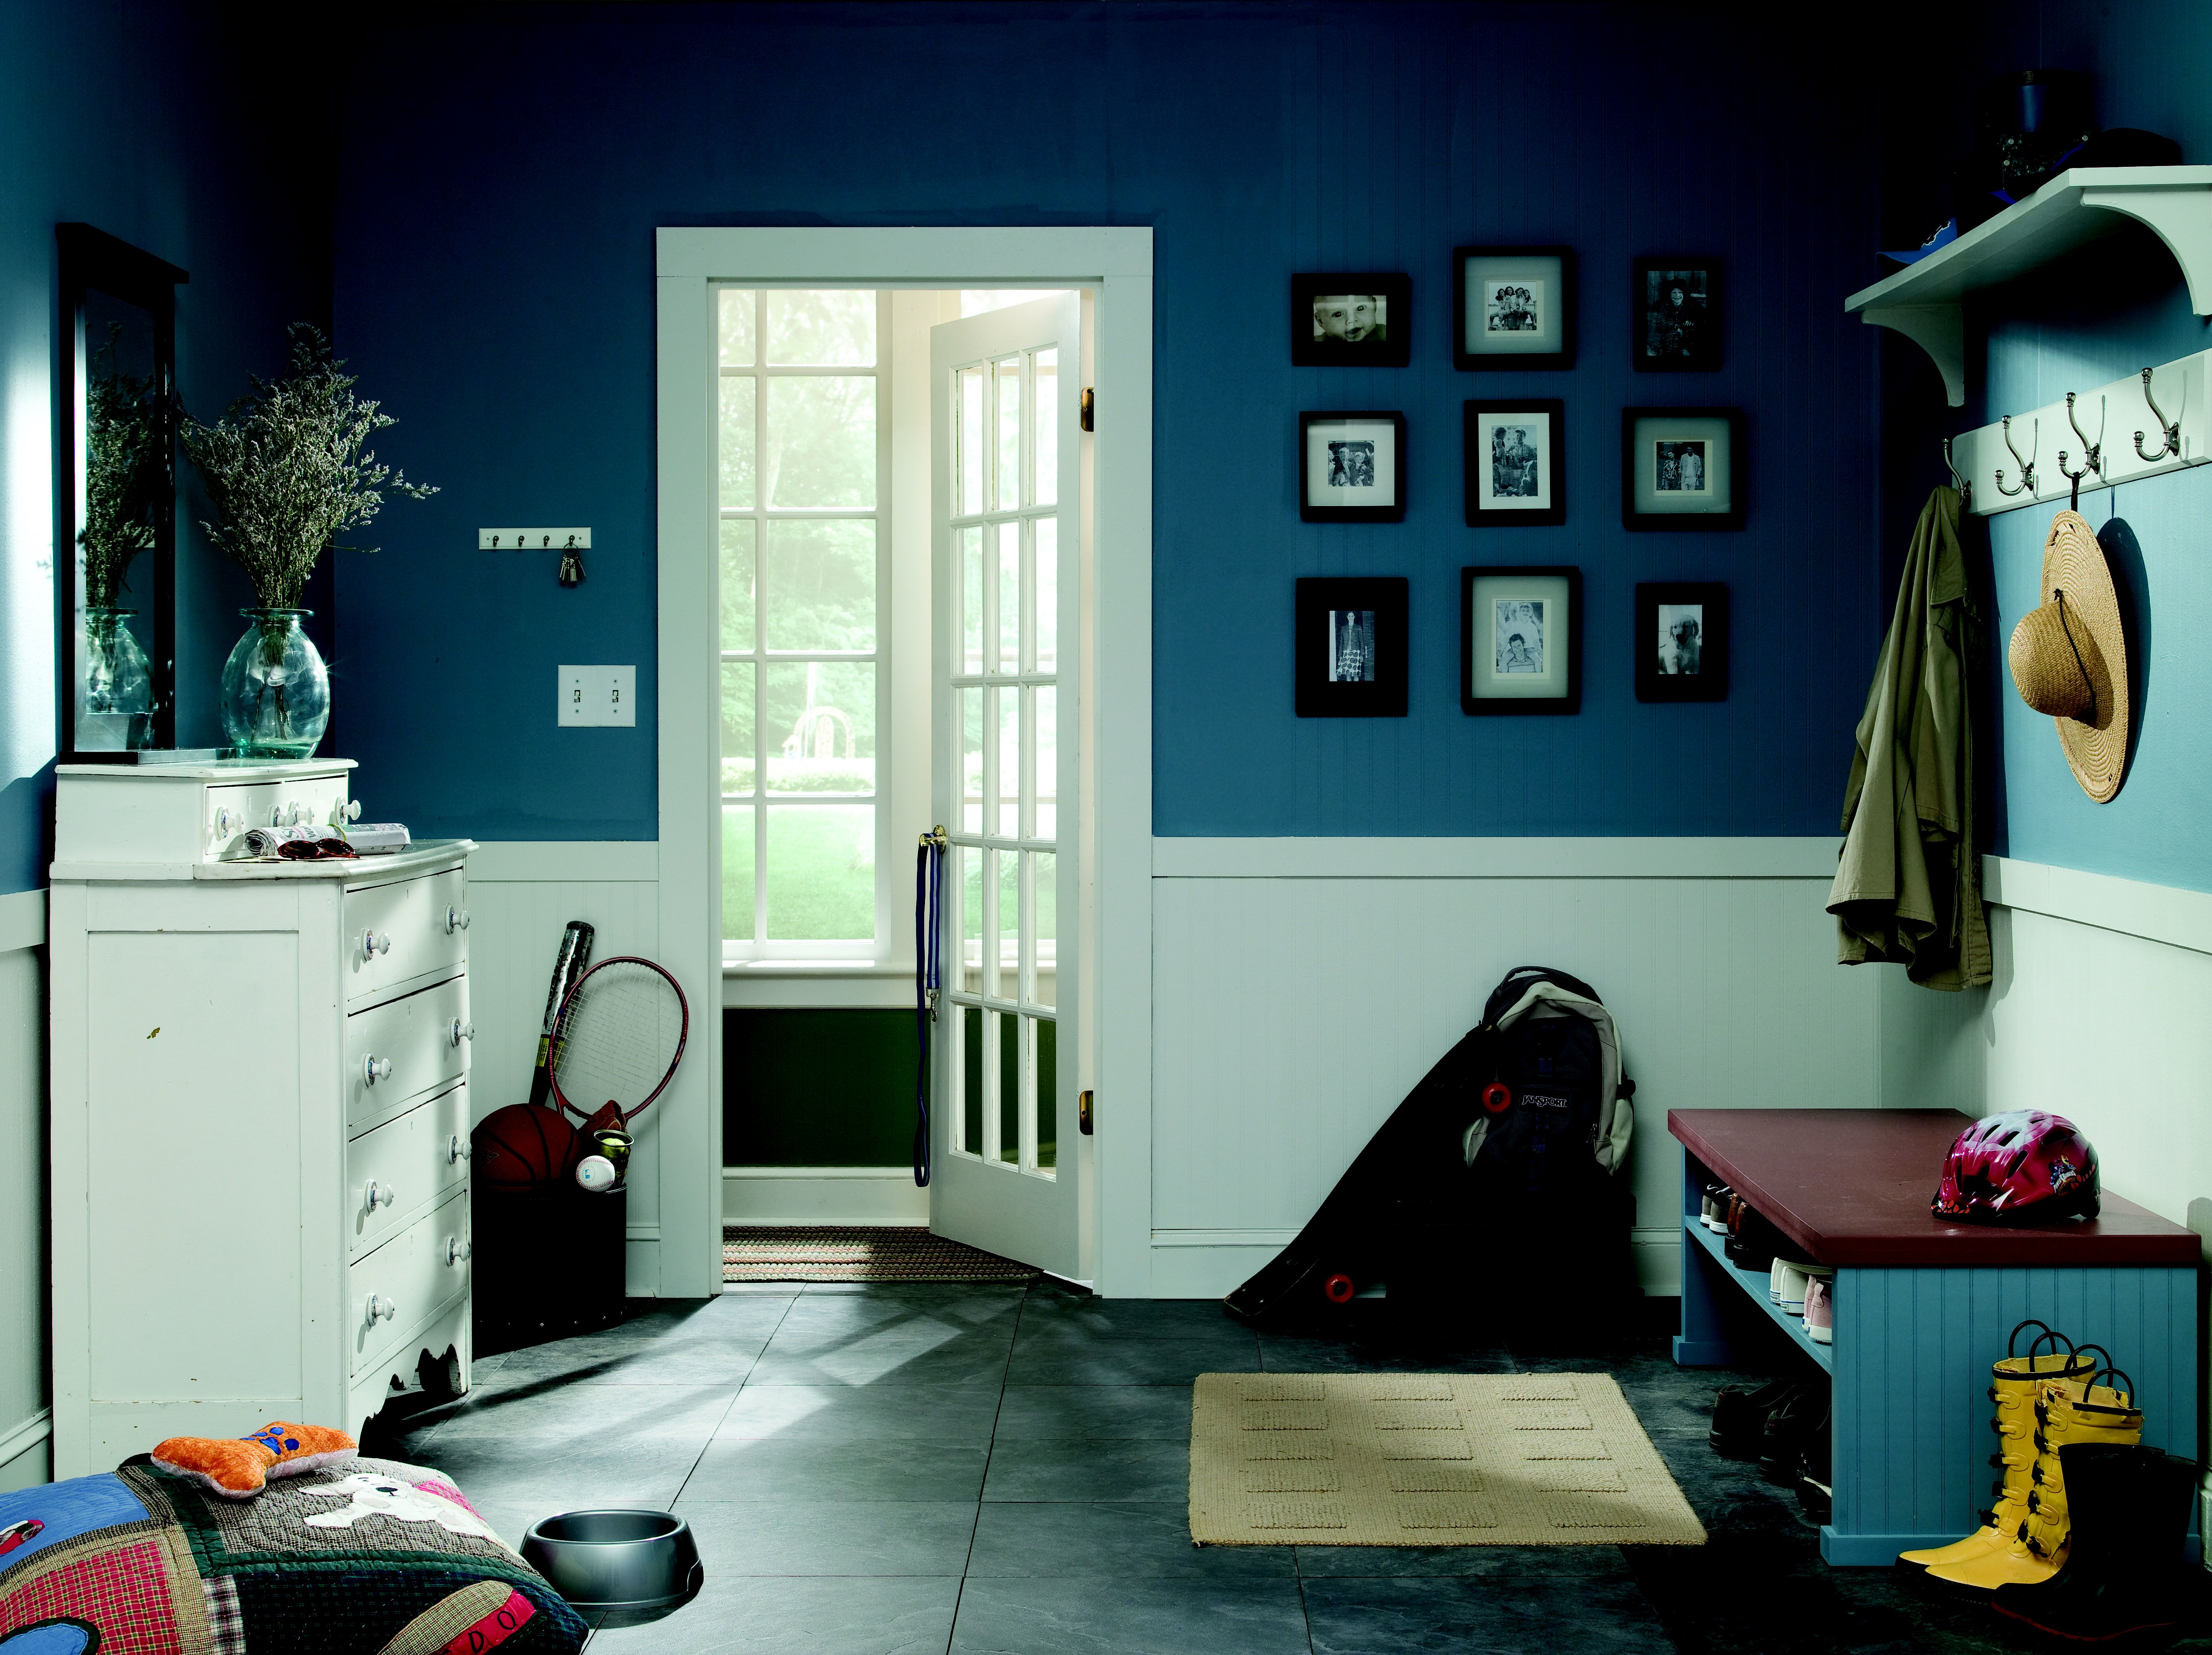 Behr Paints Waterscape 530F-S brought life to this mudroom